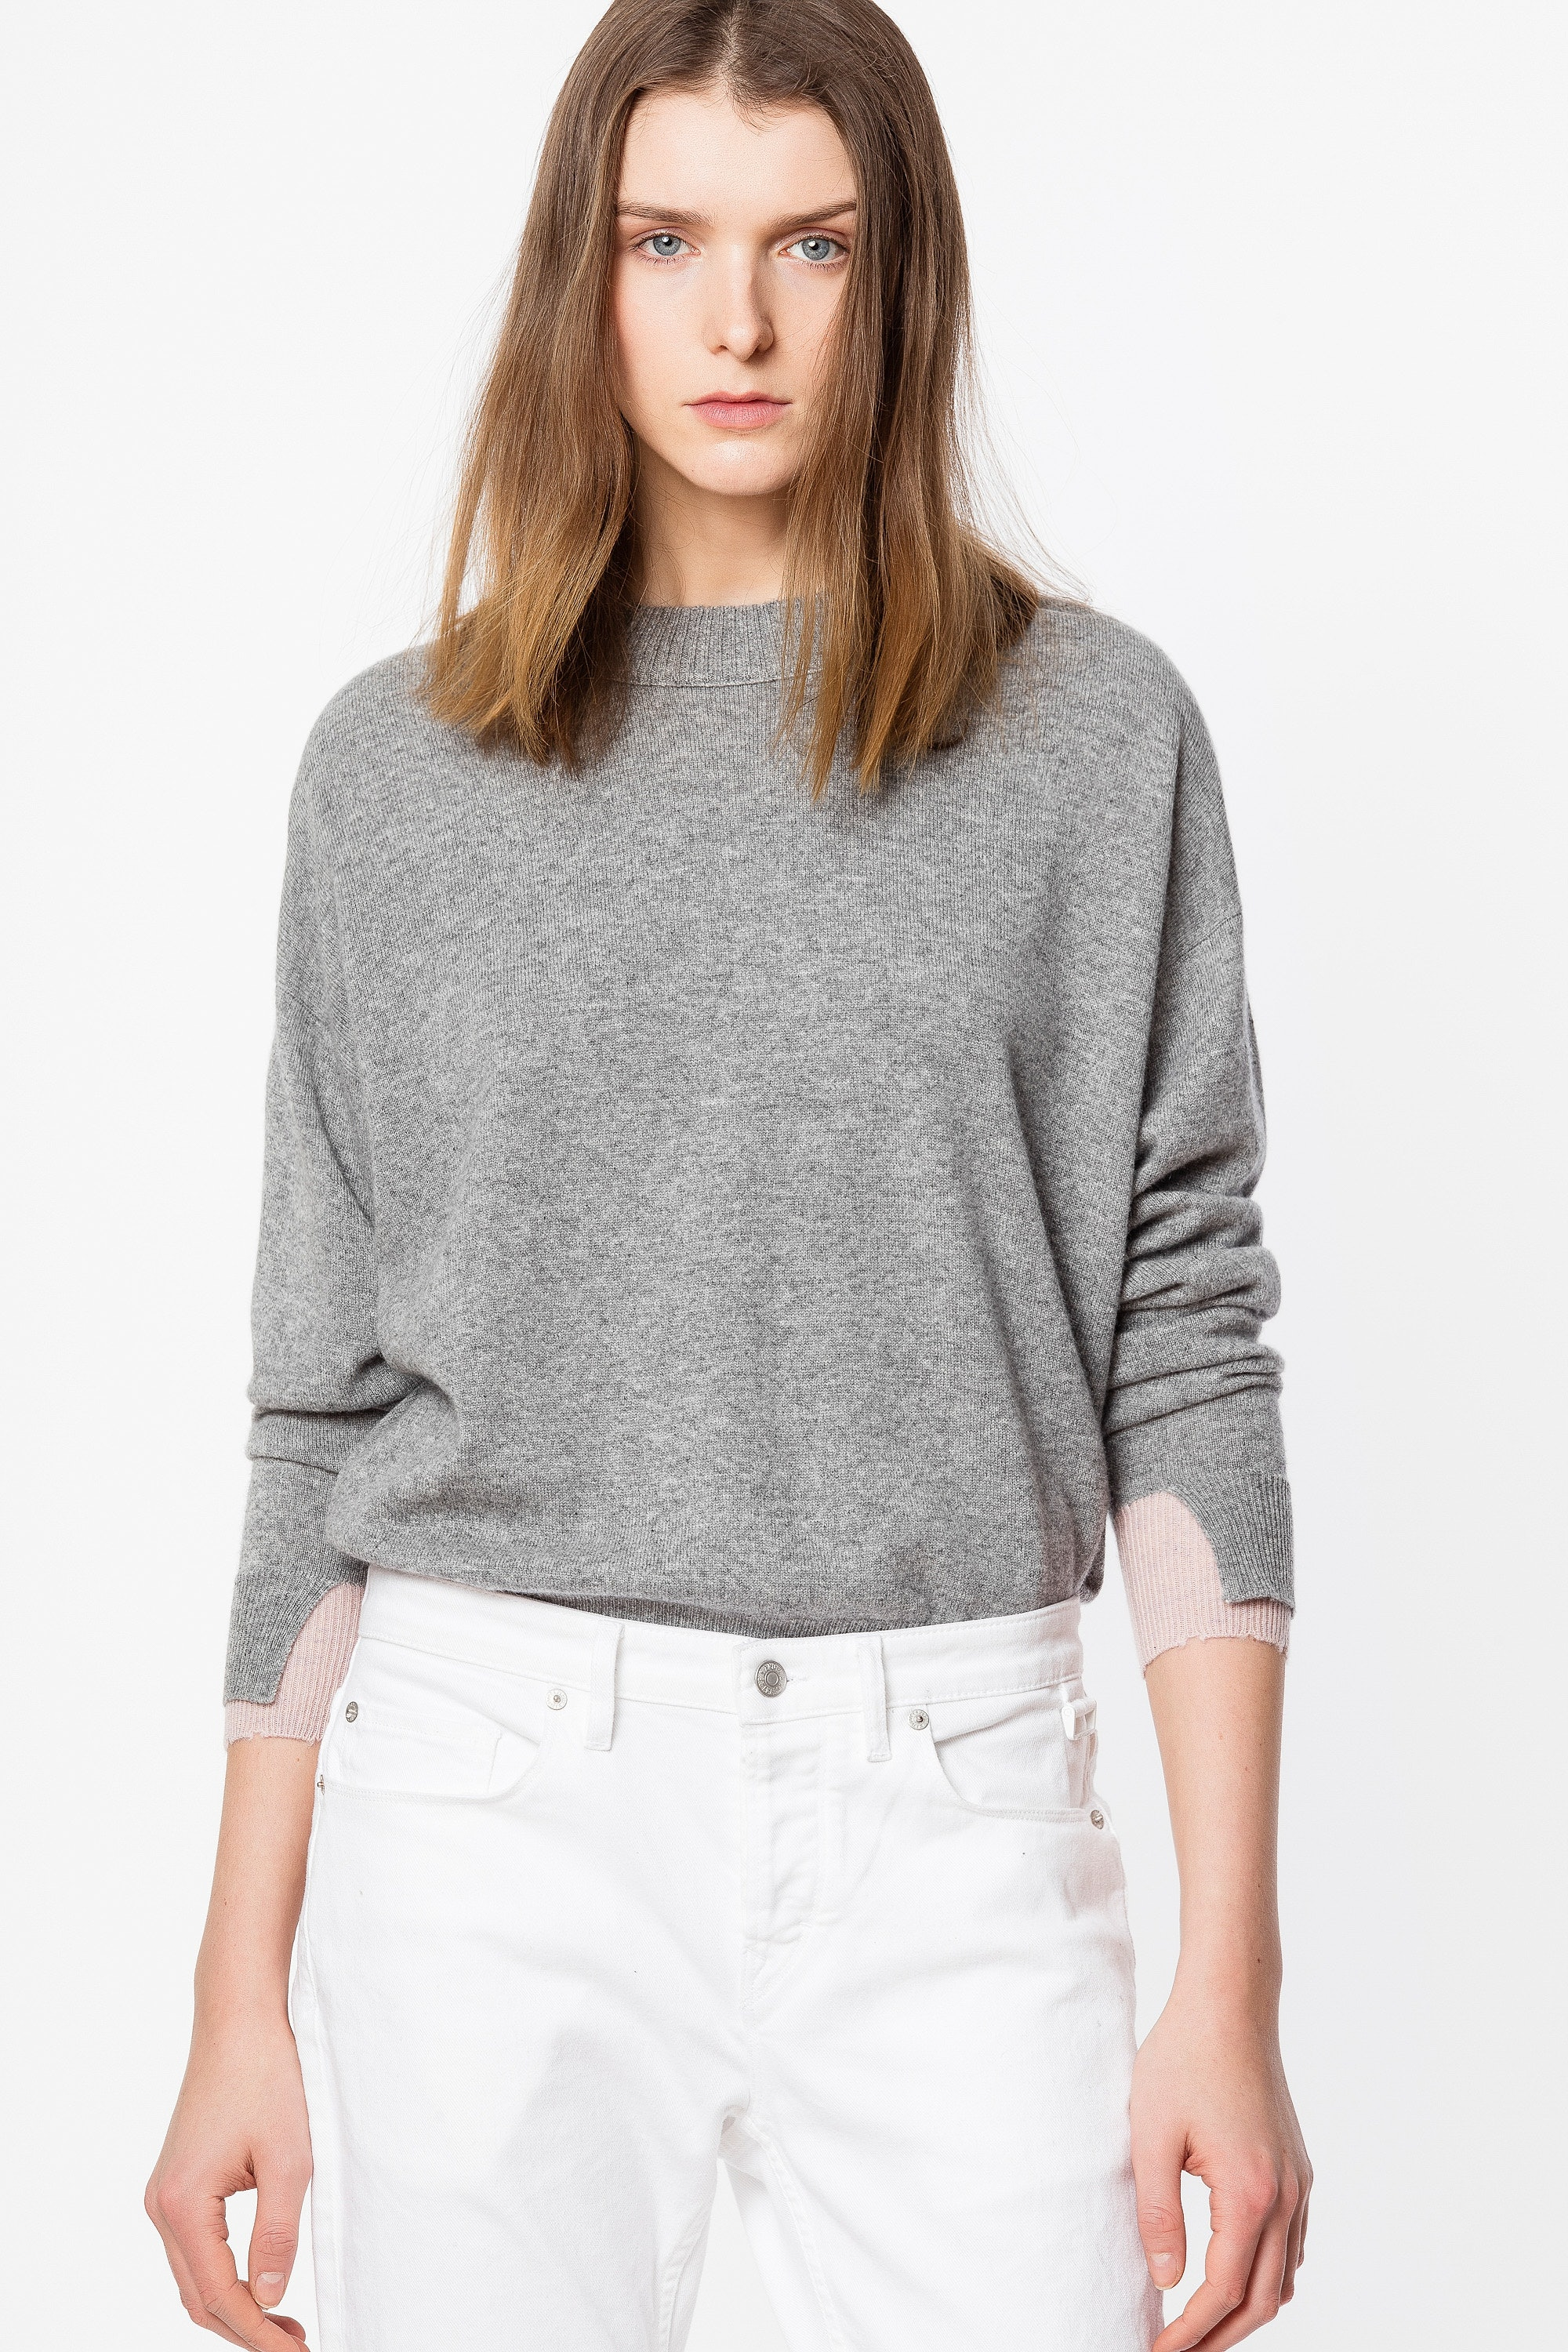 Life Cachemire sweater